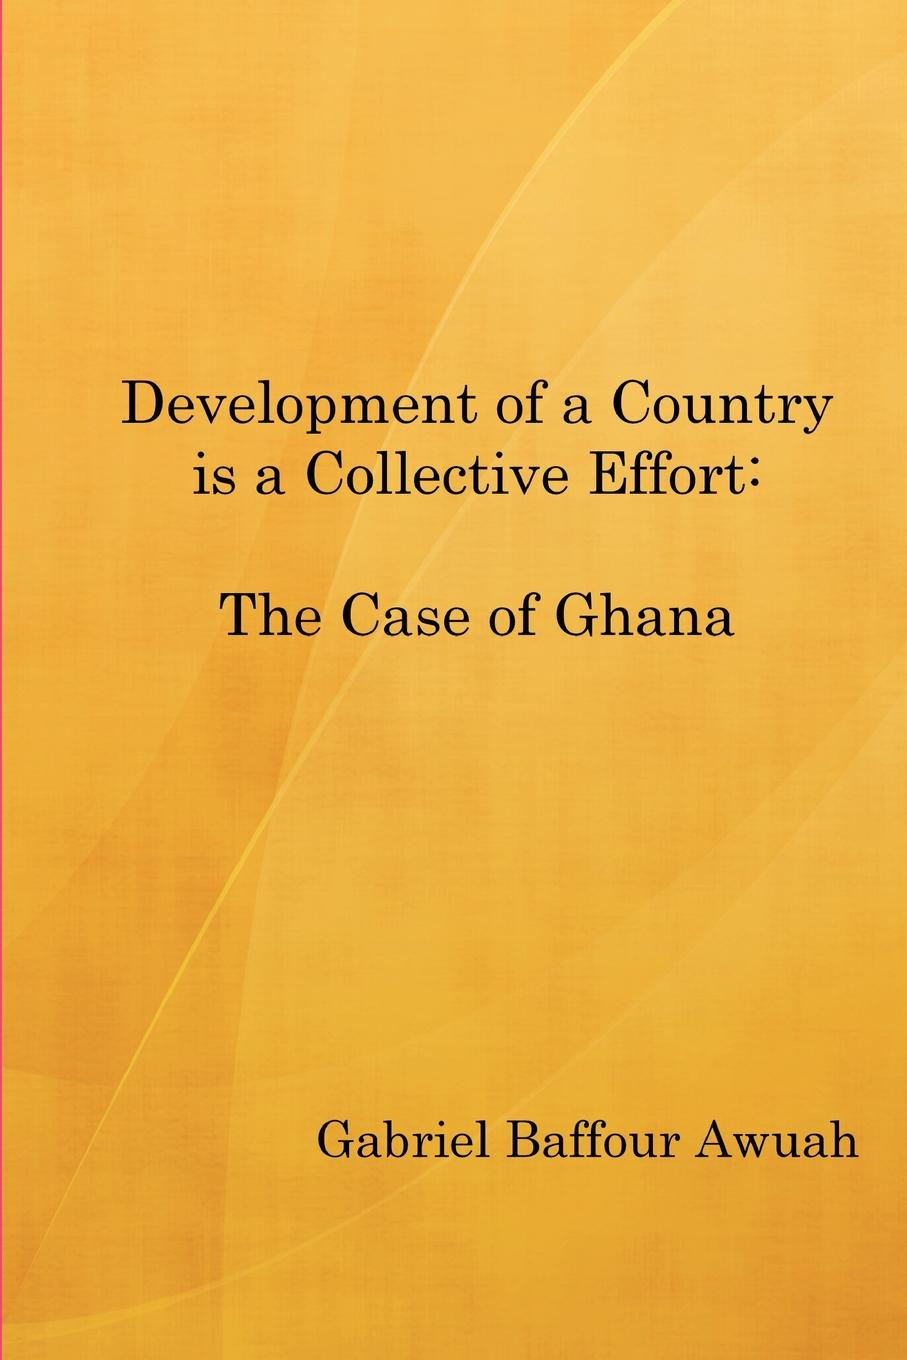 Development of a Country is a Collective Effort. The Case of Ghana Our case country Ghana, like many others in Africa, is characterized...